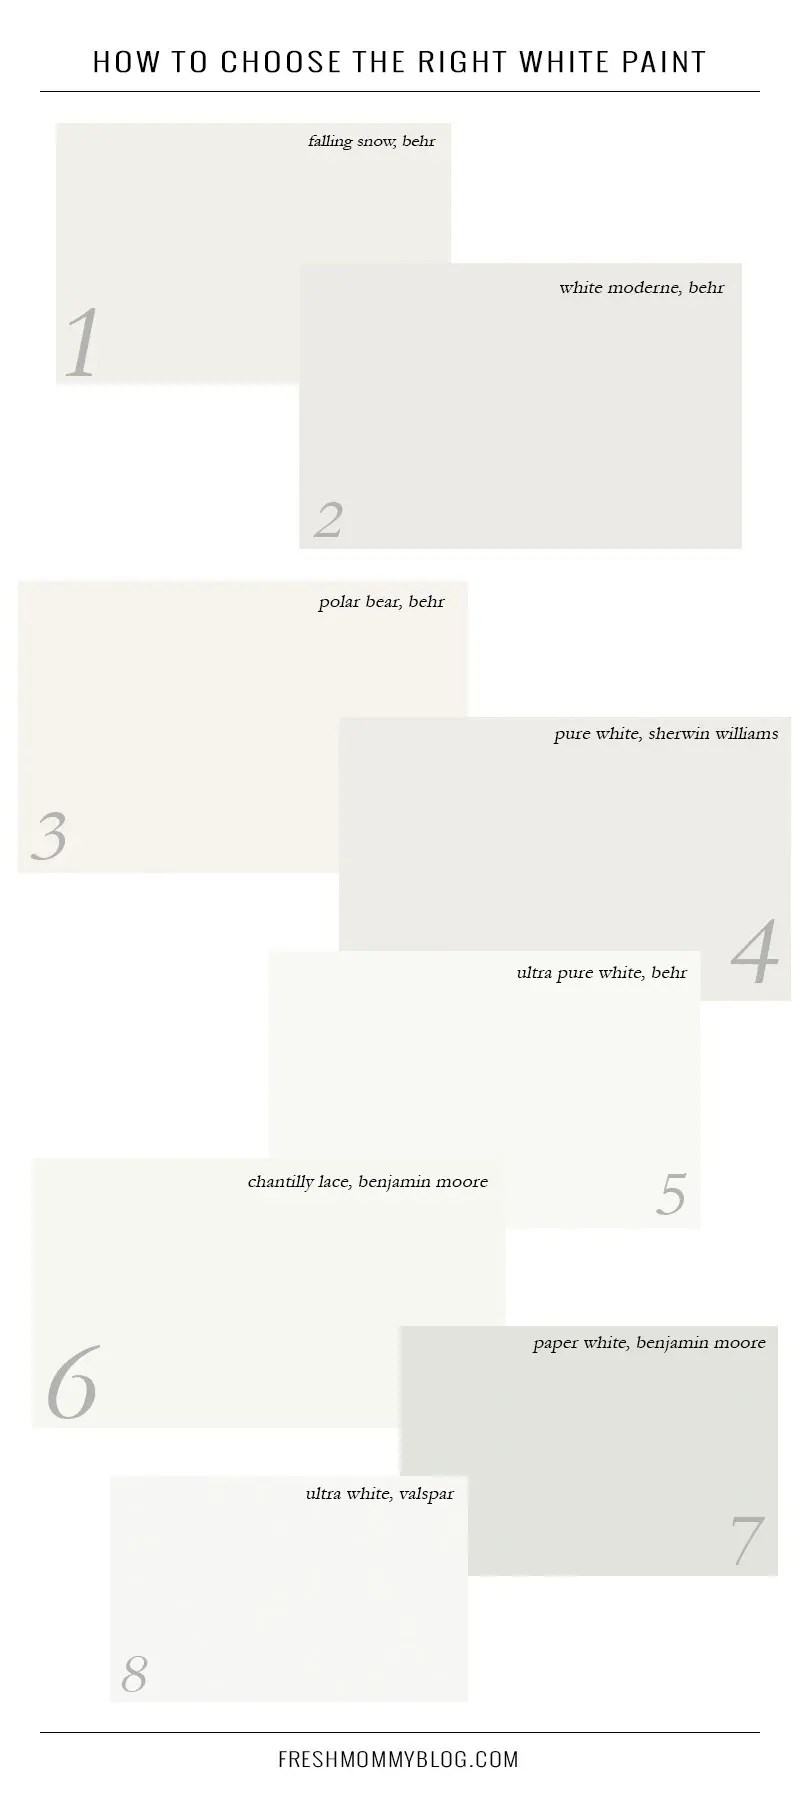 How to choose the right white paint, tips for finding the right white for your home, bedroom or any space!